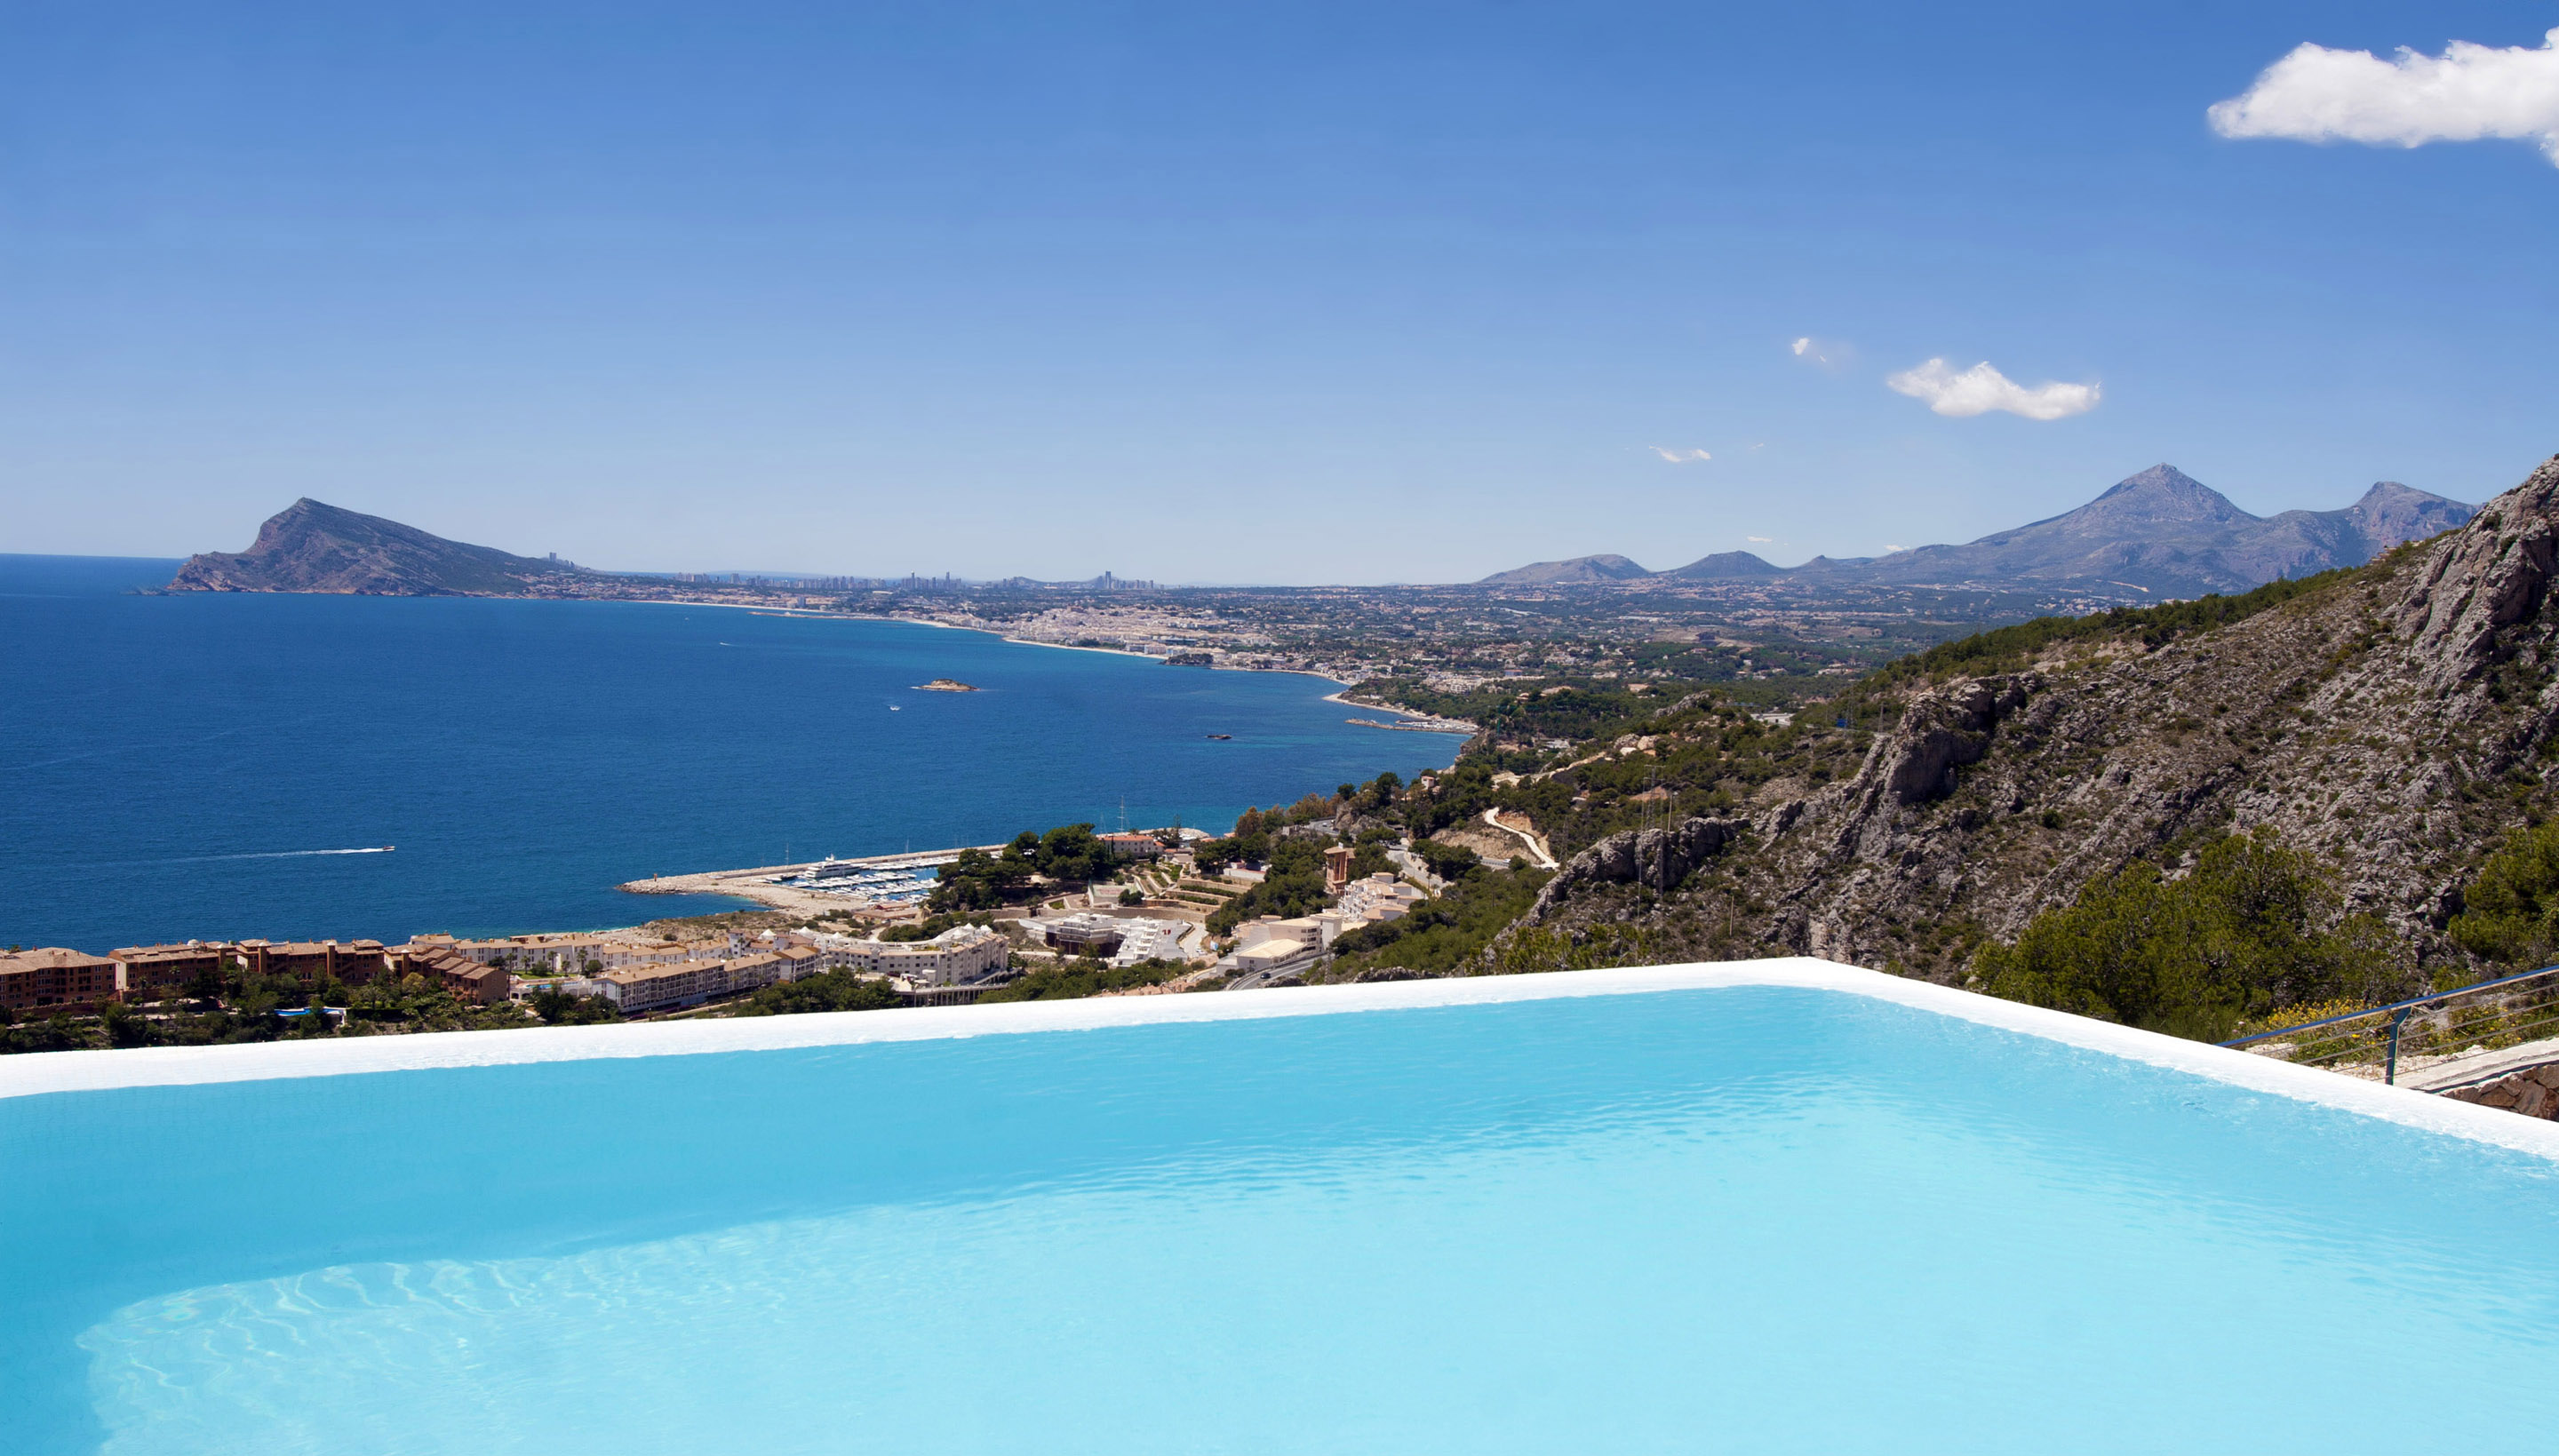 swimming pool and sea view Modern Mansions Superlatives -La Perla del Mediterraneo by Carlos Gilardi